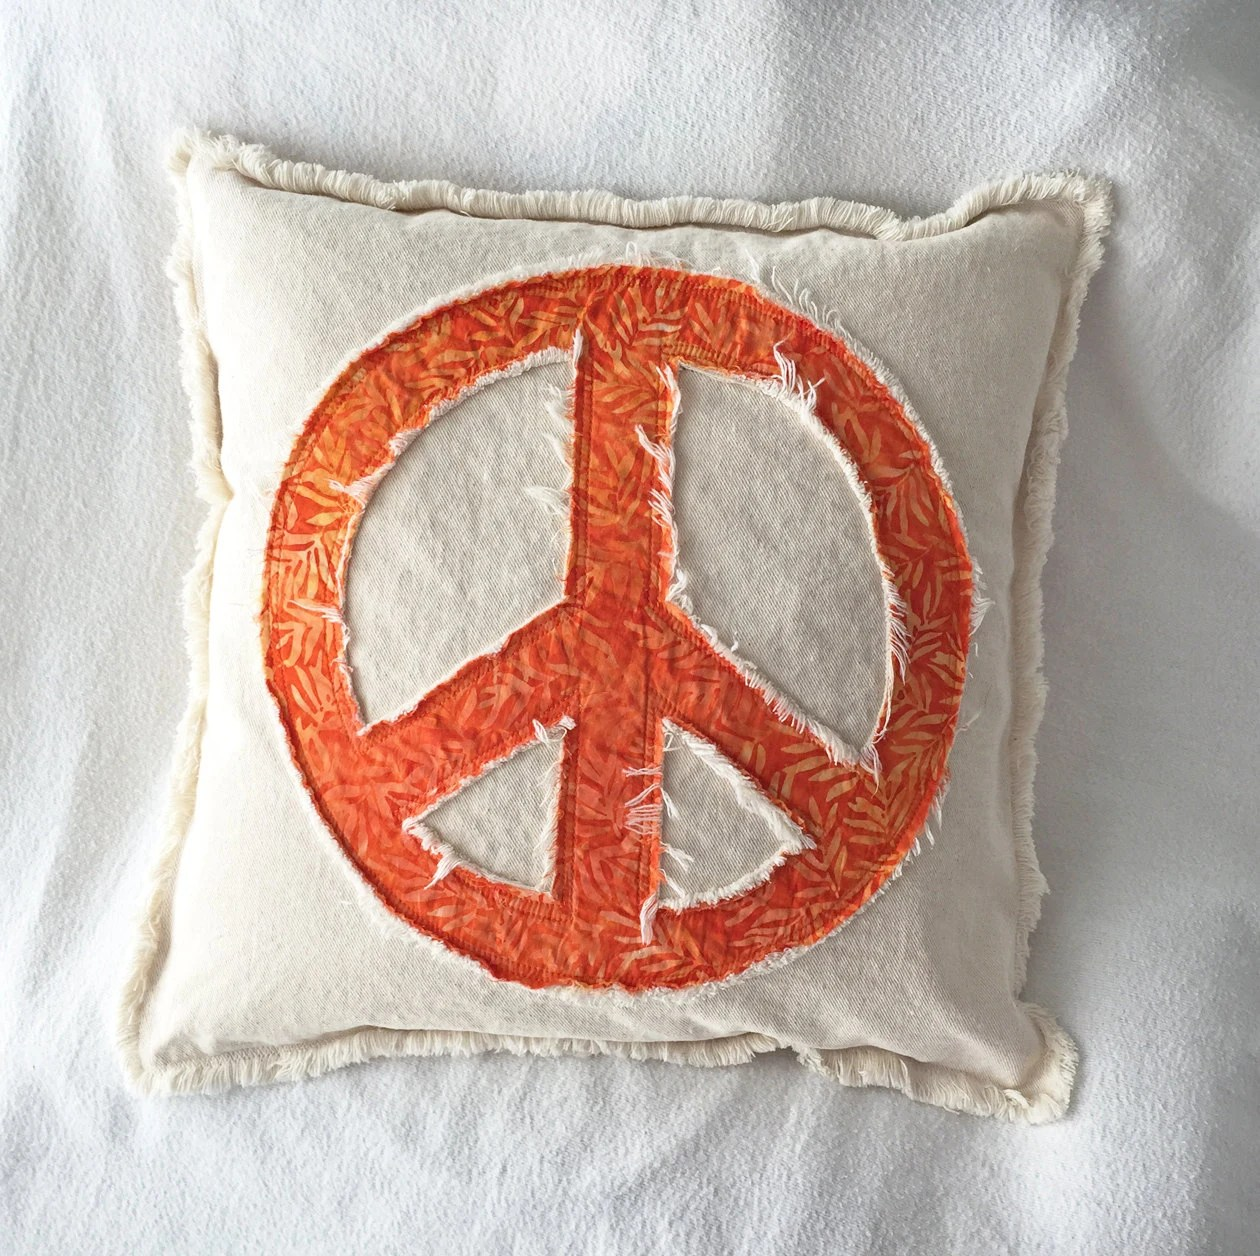 Peace sign pillow cover in orange leaf batik and distressed